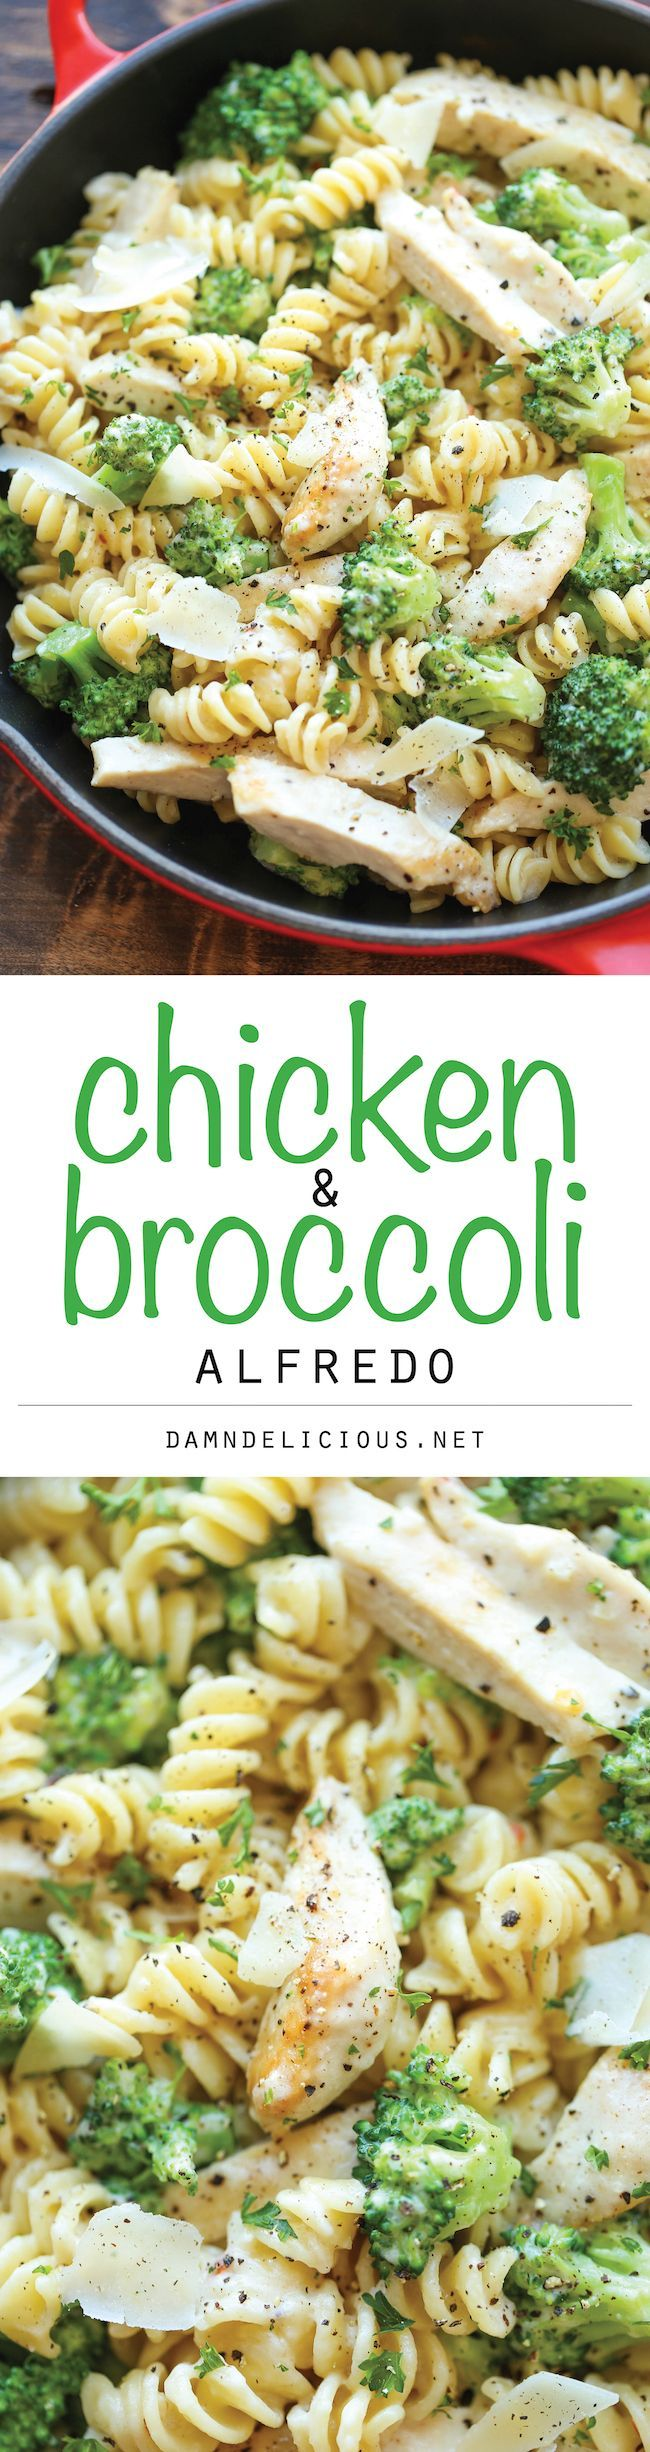 Chicken and Broccoli Alfredo - A simple dish that is easy to make on a busy week day night.